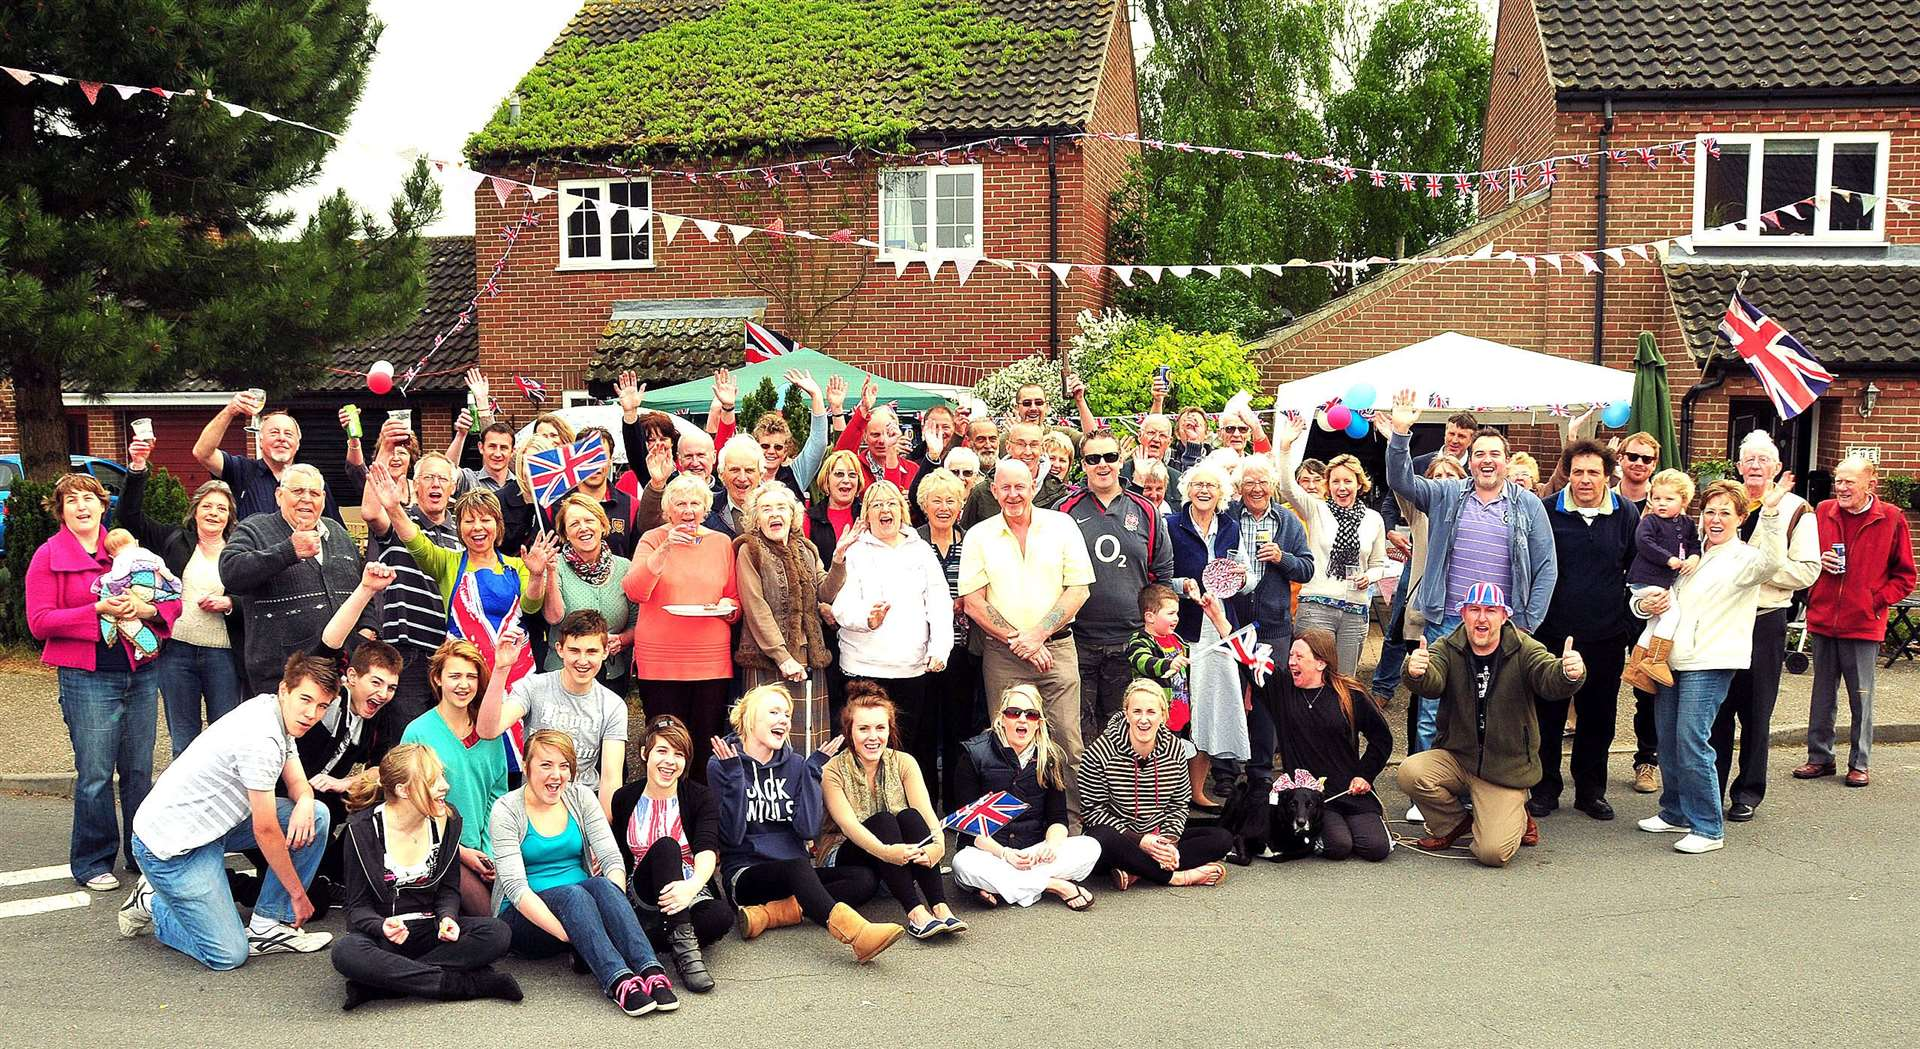 Royal wedding street party on Sutton road and Ranworth close in Swaffham.. (46651647)